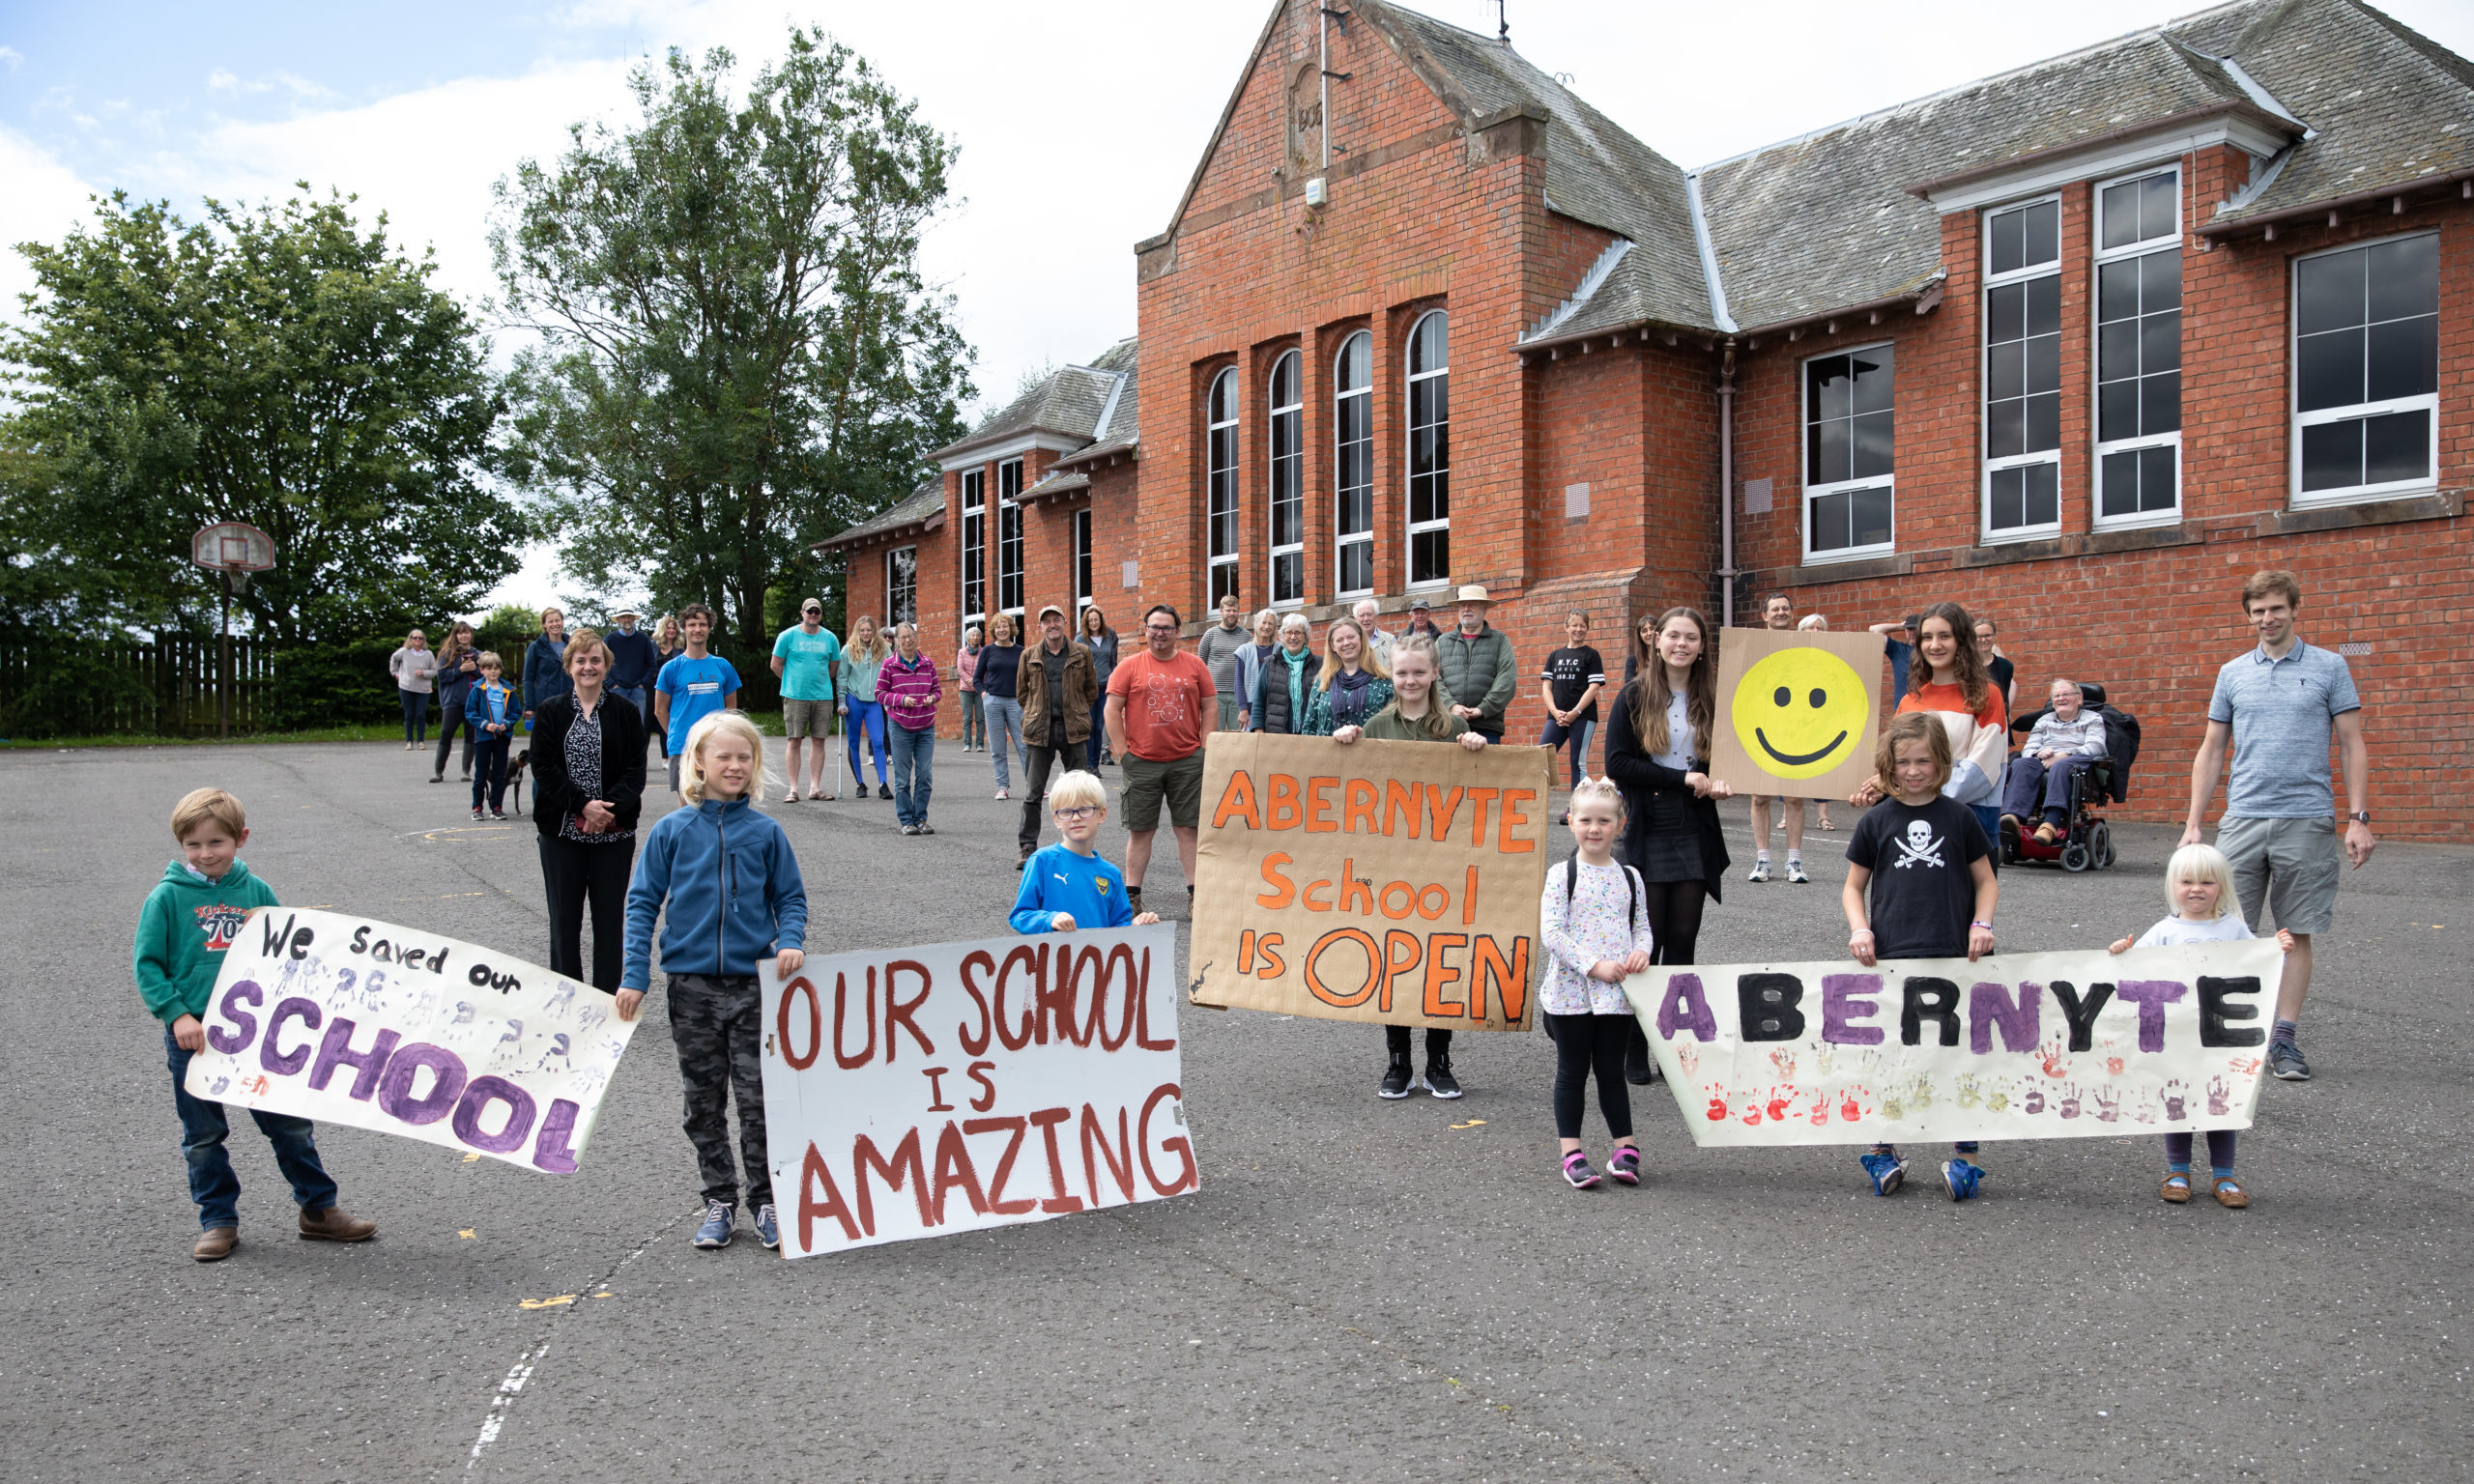 There were celebrations at Abernyte Primary when the closure was overturned.